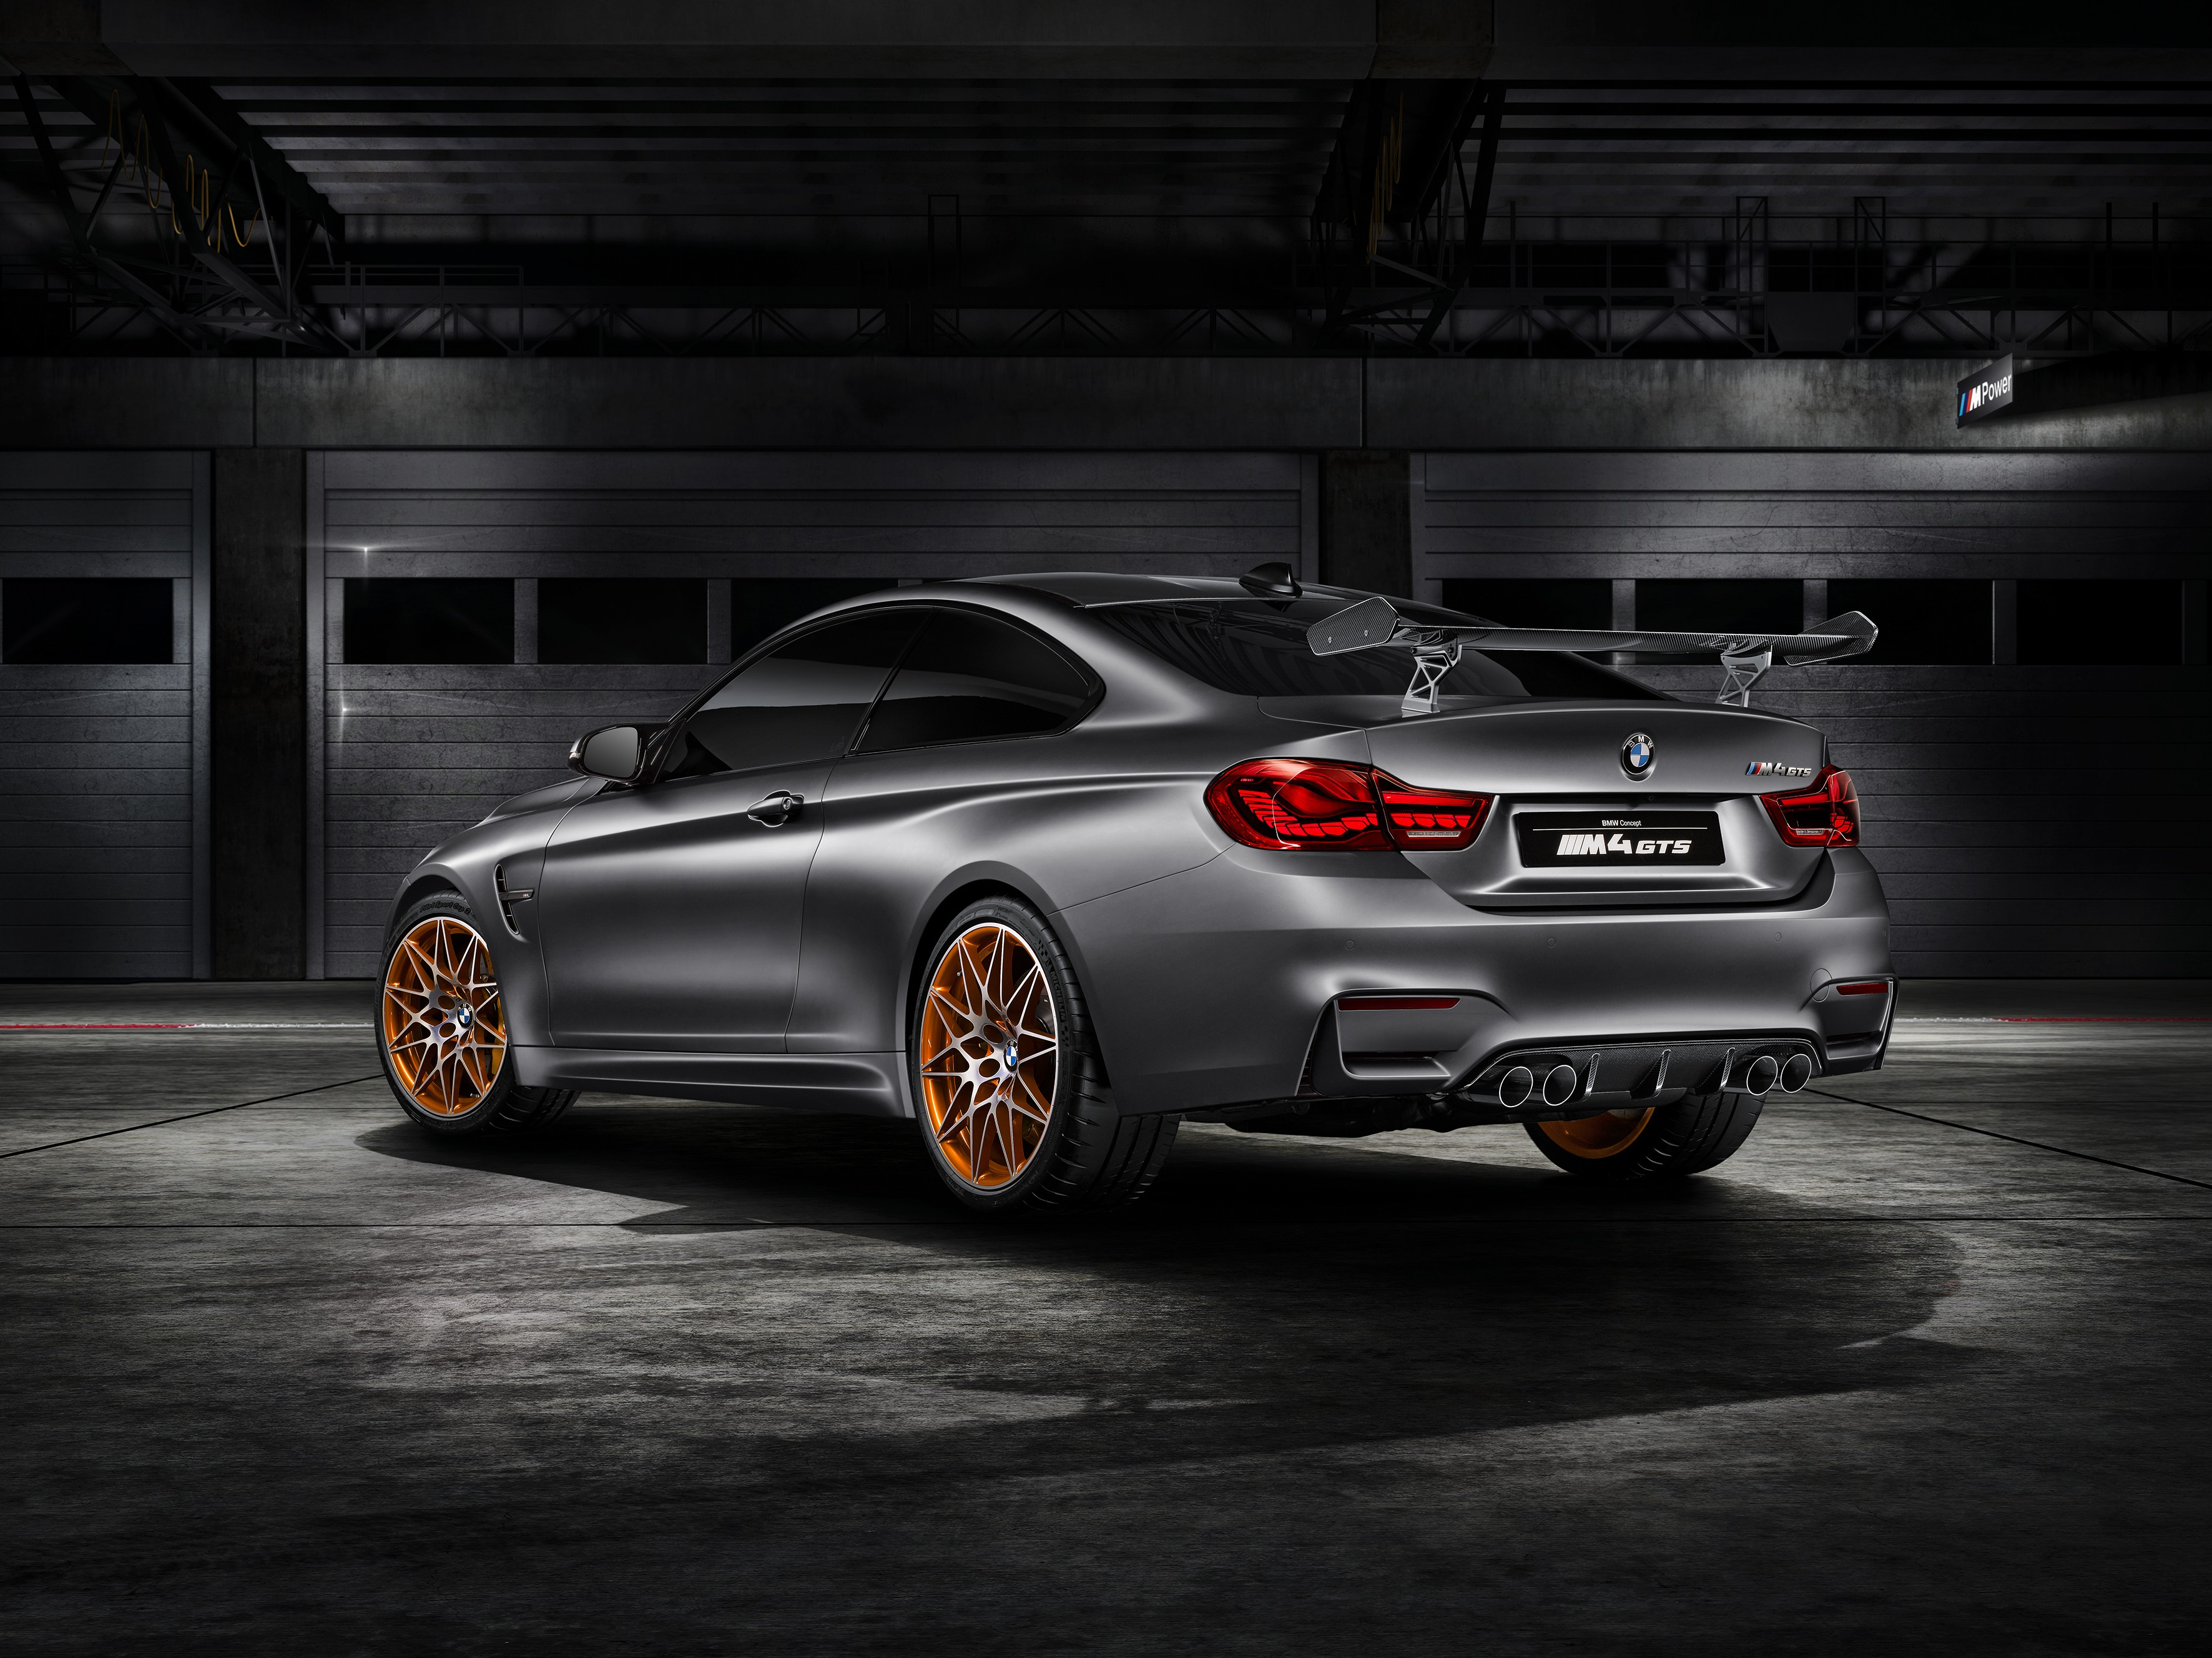 bmw-concept-m4-gts-makes-world-debut-at-pebble-beach-with-oled-lighting-photo-gallery_1